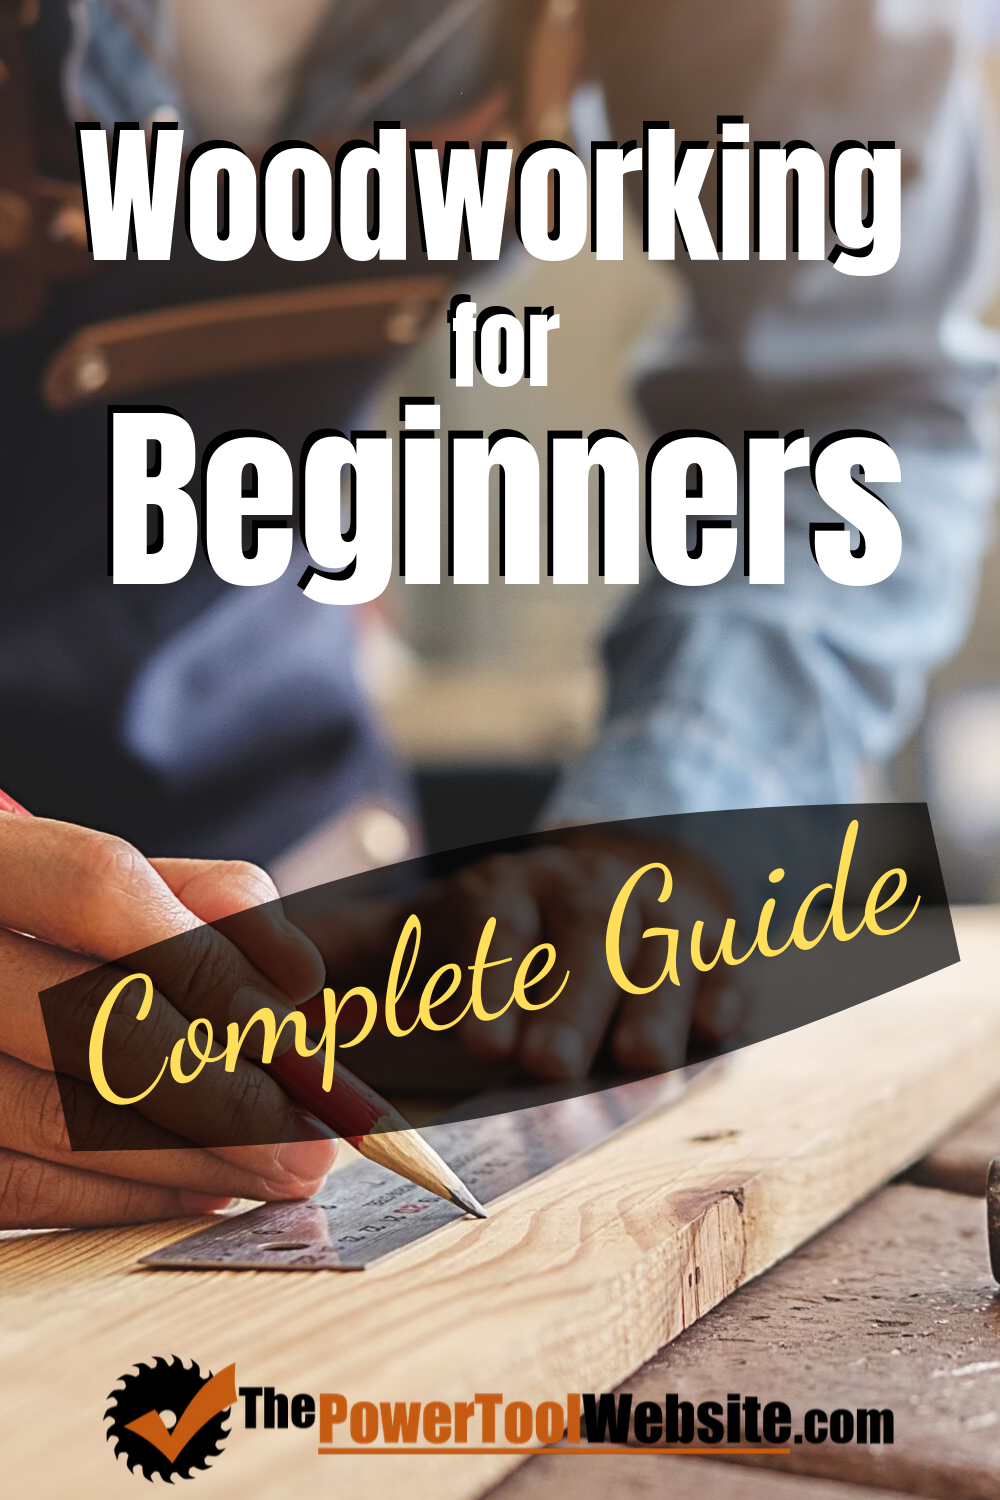 Photo of Woodworking for Beginners – Tools, Projects, and Techniques To Practice